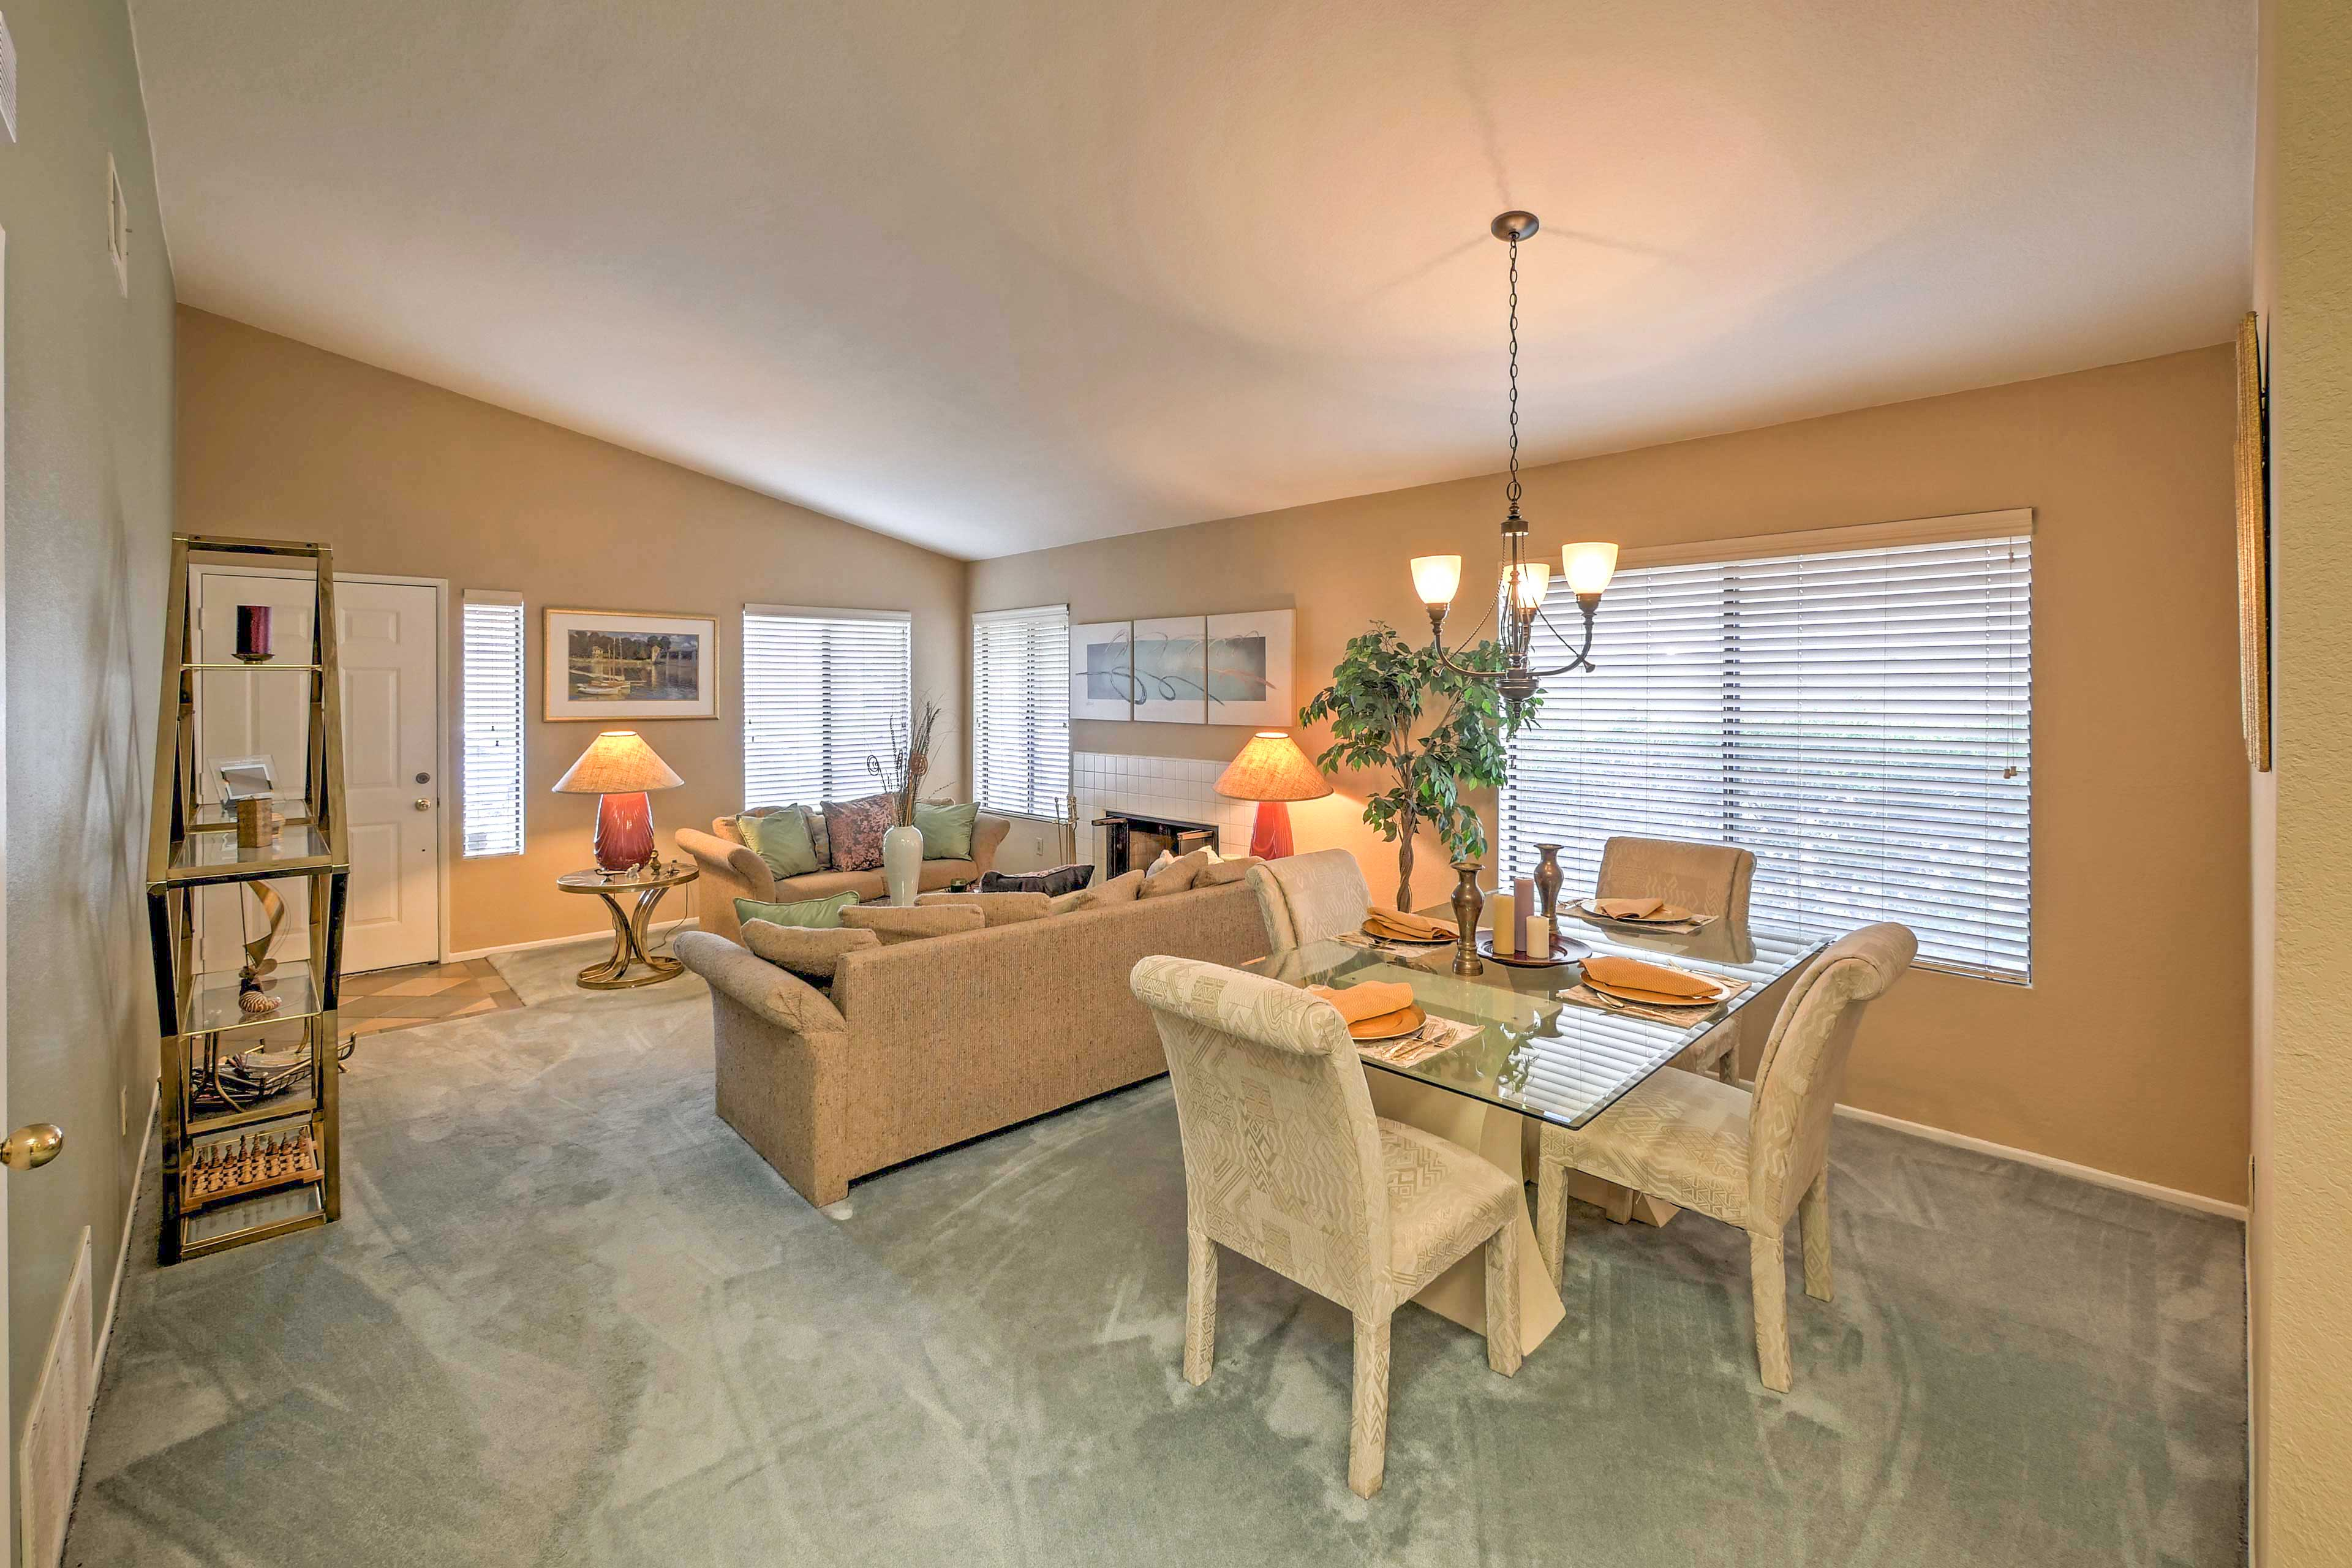 Gather around the dining room table for family family board games and meals.